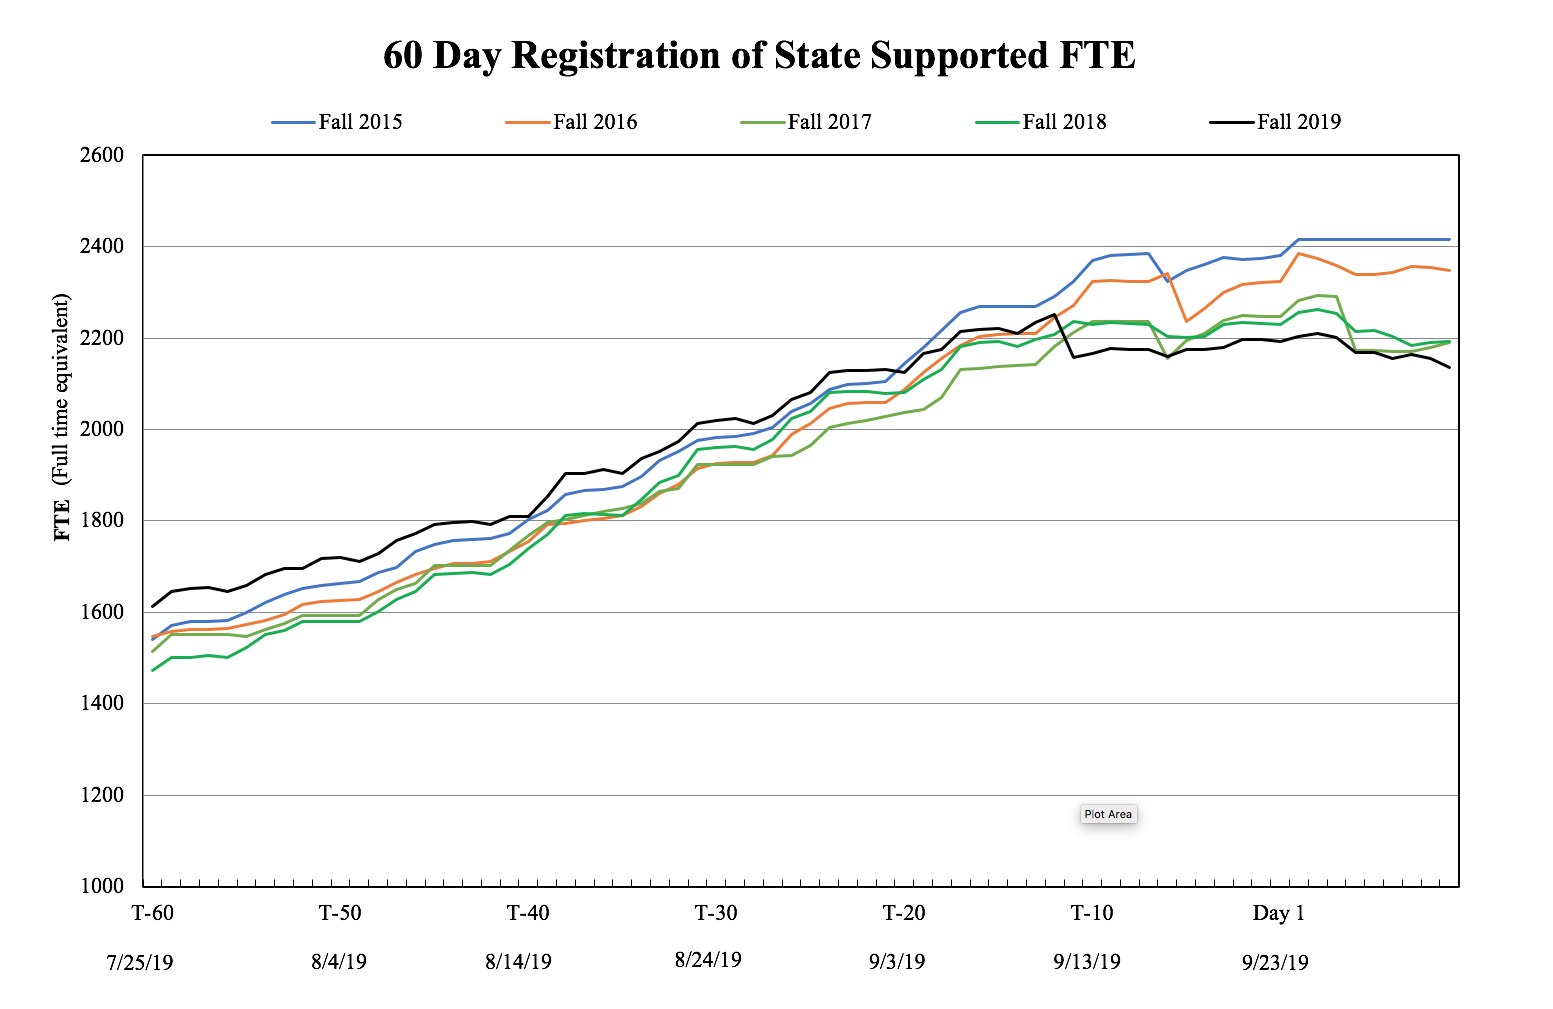 60 day registration history for fall 2019